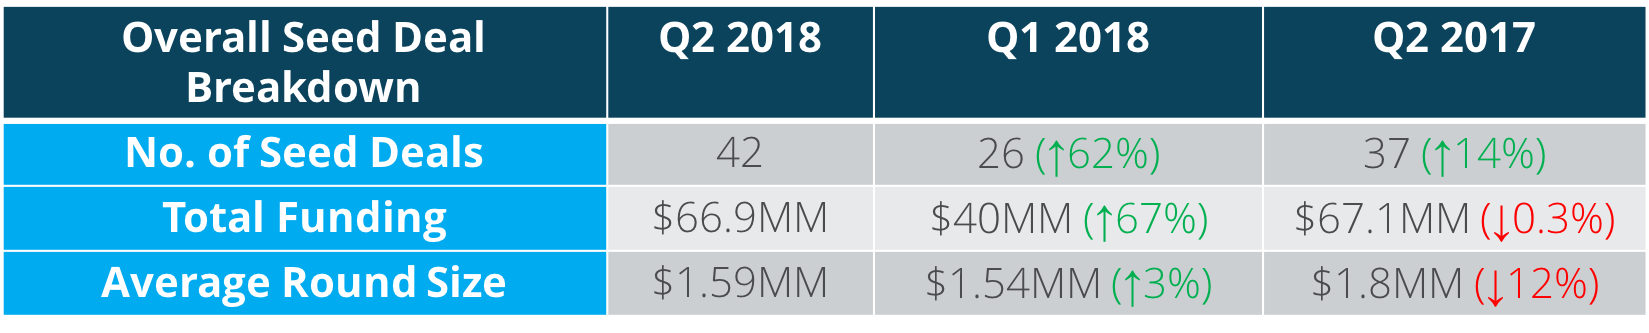 Q2 18 Overall Deal Breakdown.png